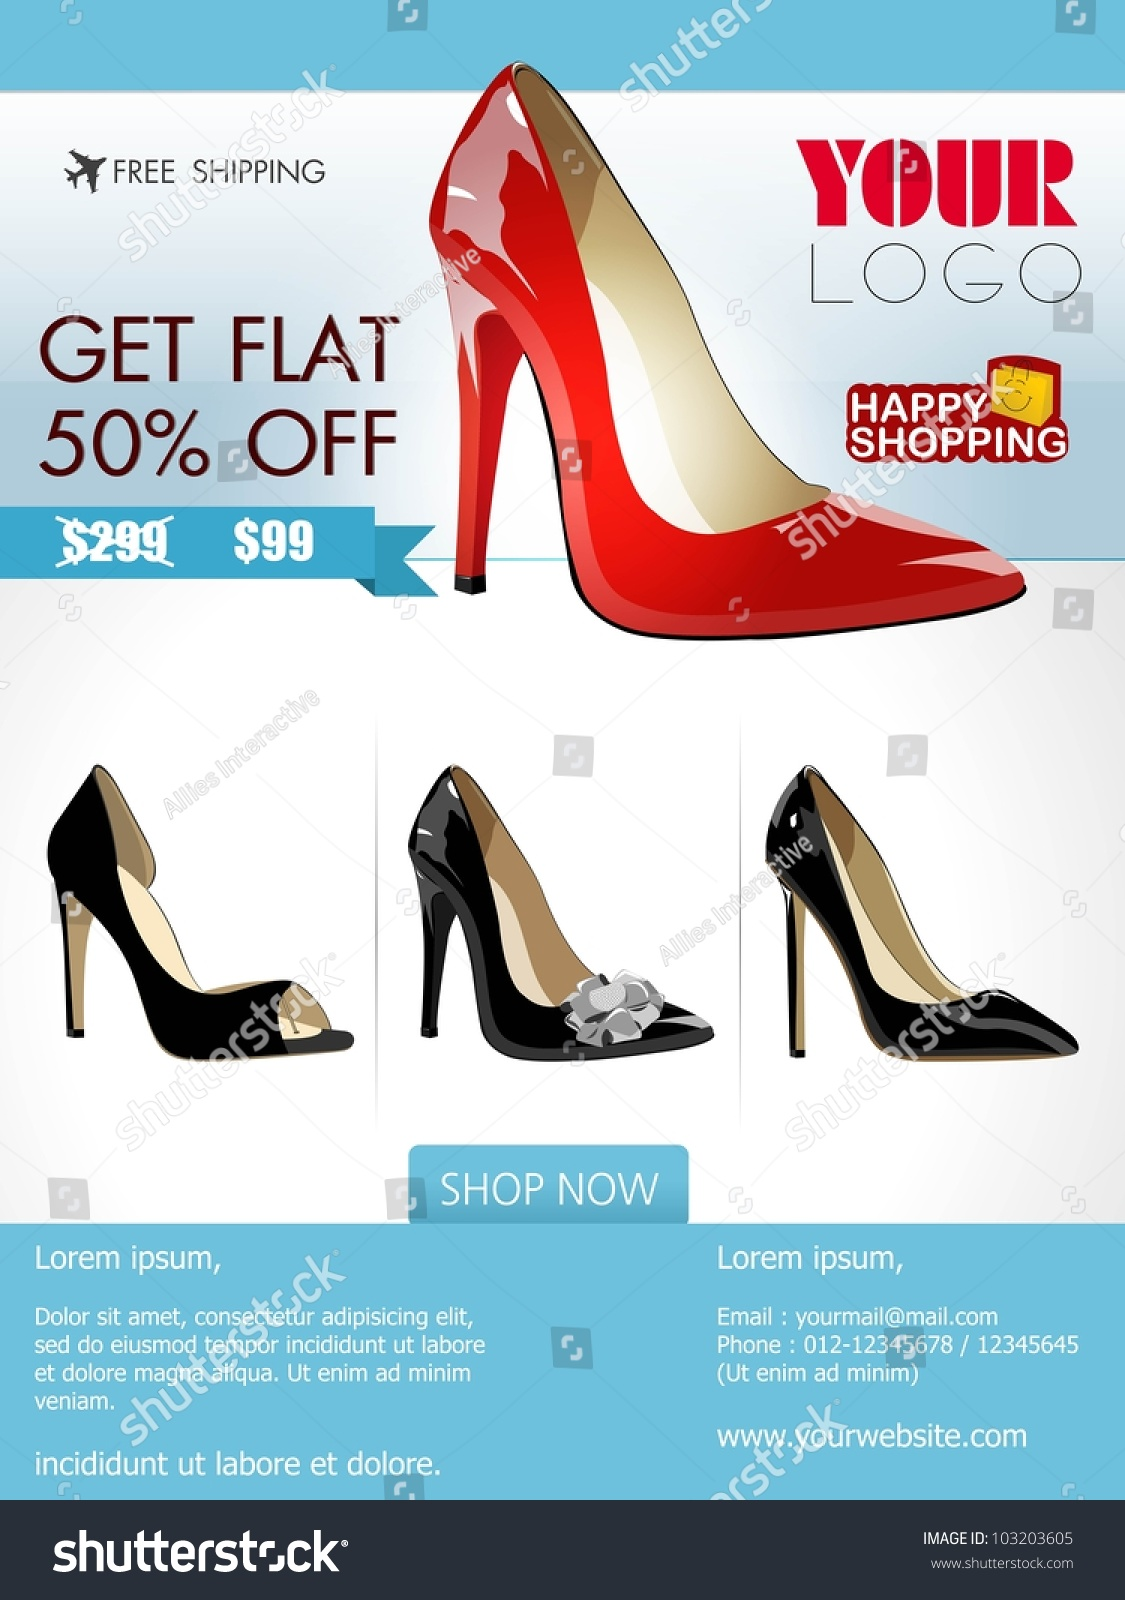 professional product flyer banner design ladies stock vector professional product flyer or banner design of ladies shoe or other product attractive discount offers